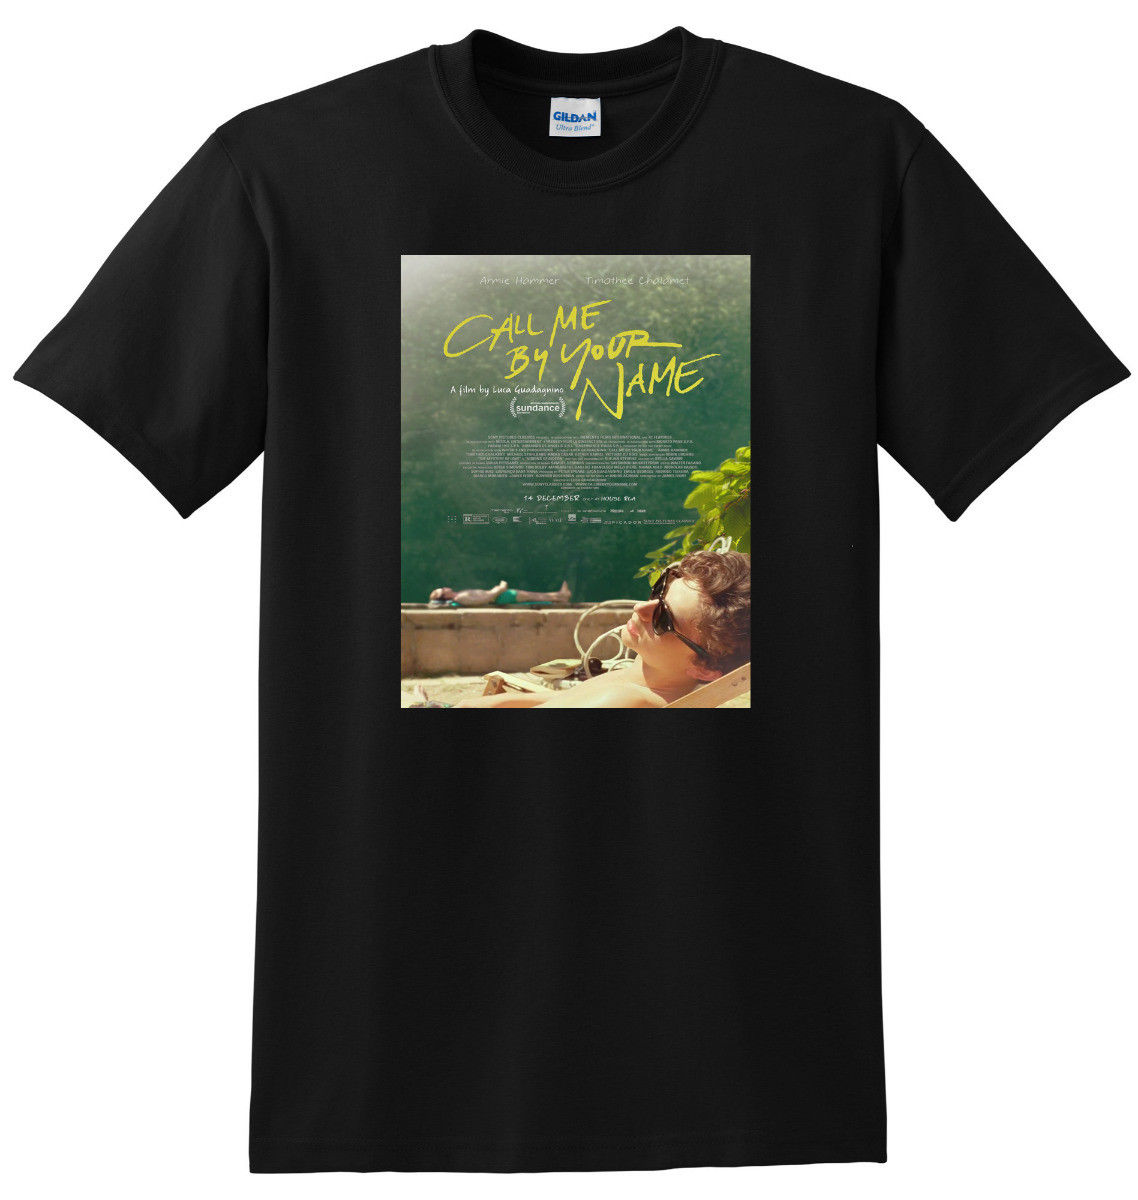 *NEW* CALL ME BY YOUR NAME T SHIRT movie poster tee SMALL MEDIUM LARGE or XL